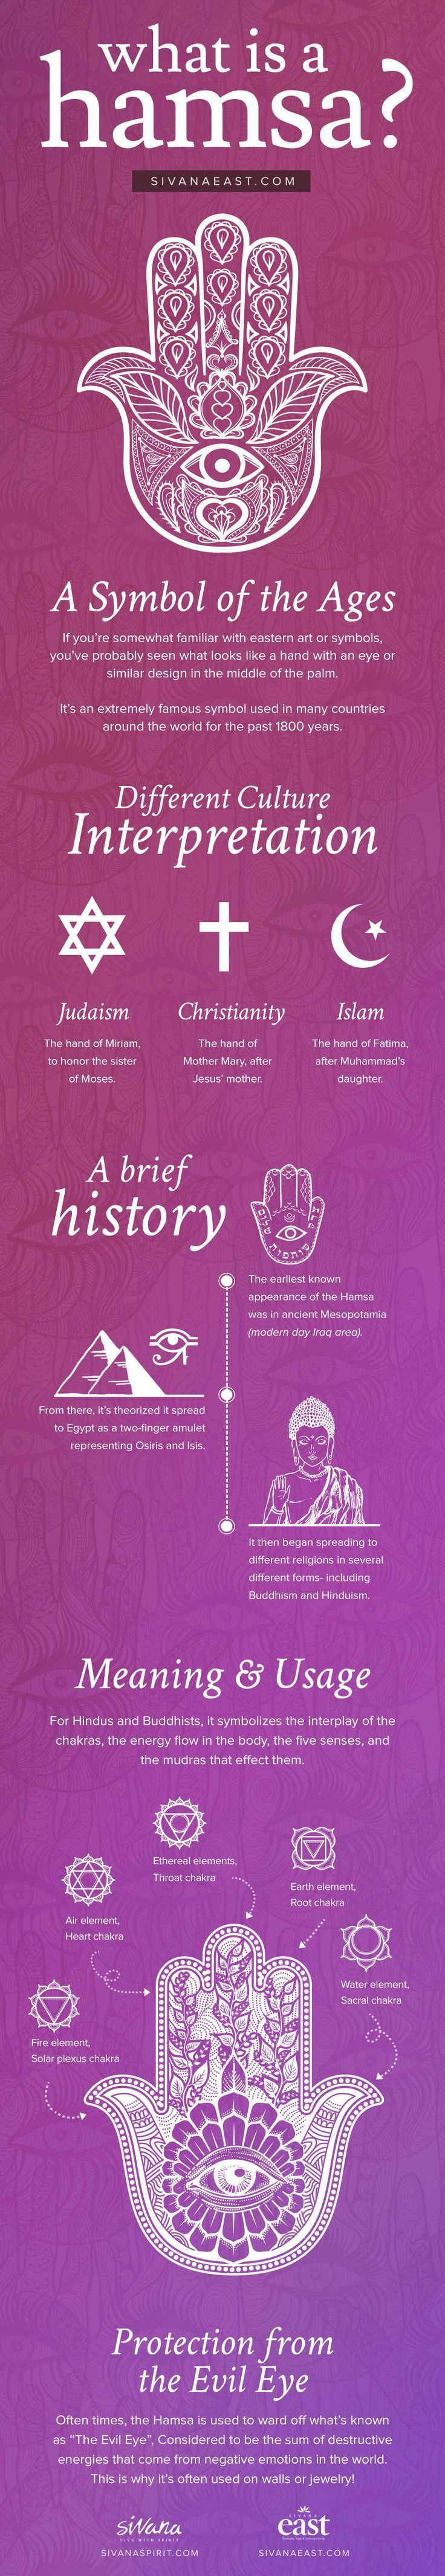 What is a hamsa infographic infographic yoga and spiritual what is a hamsa infographic biocorpaavc